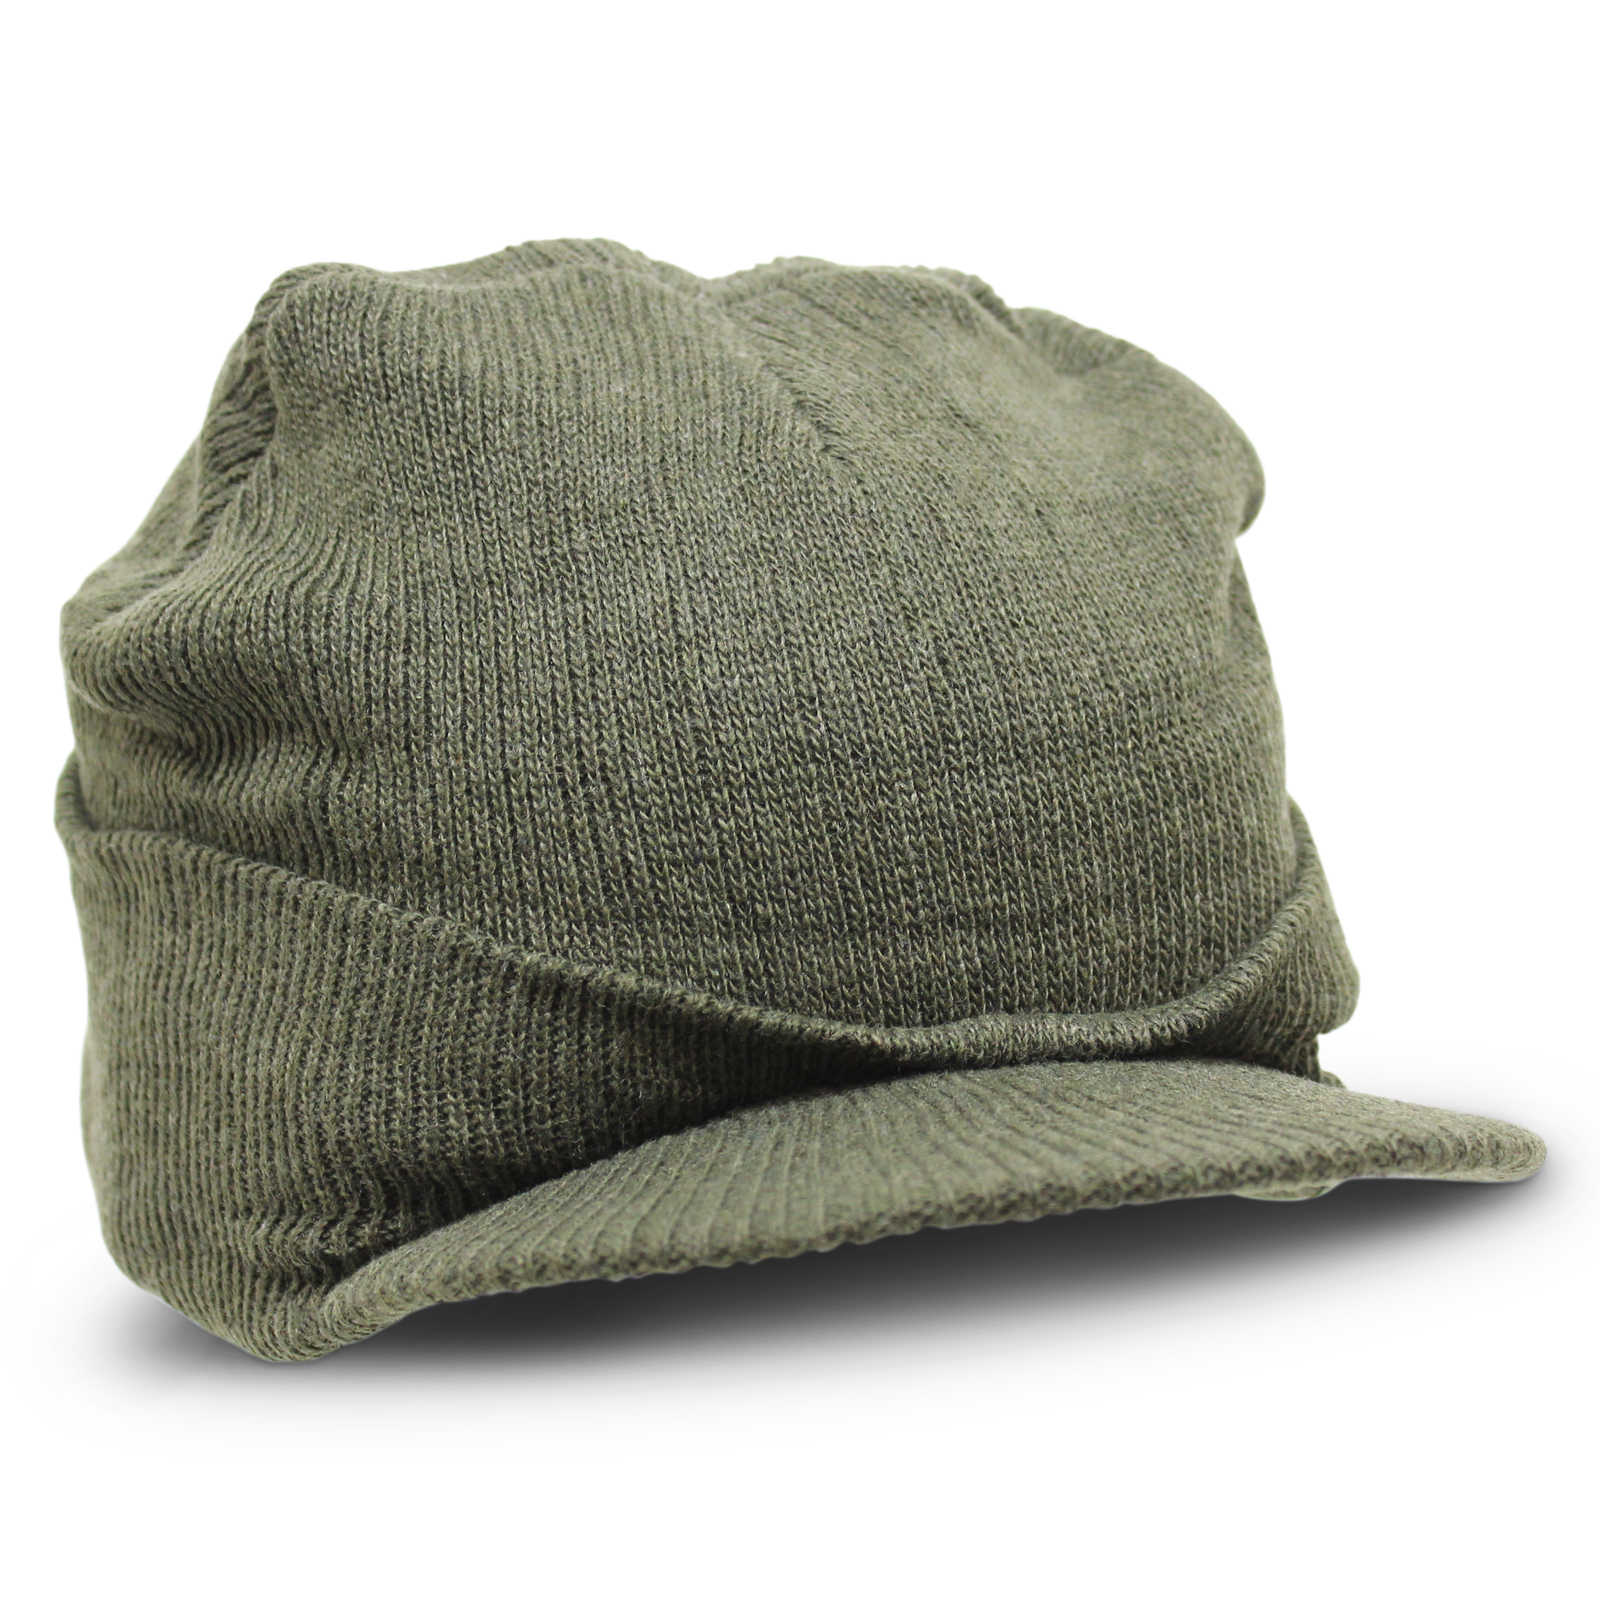 JEEP CAP ( RADAR CAP ) - COMMANDO SUMMER   CLOTHING-Hats - Headwear ... a3c85c8f4d4